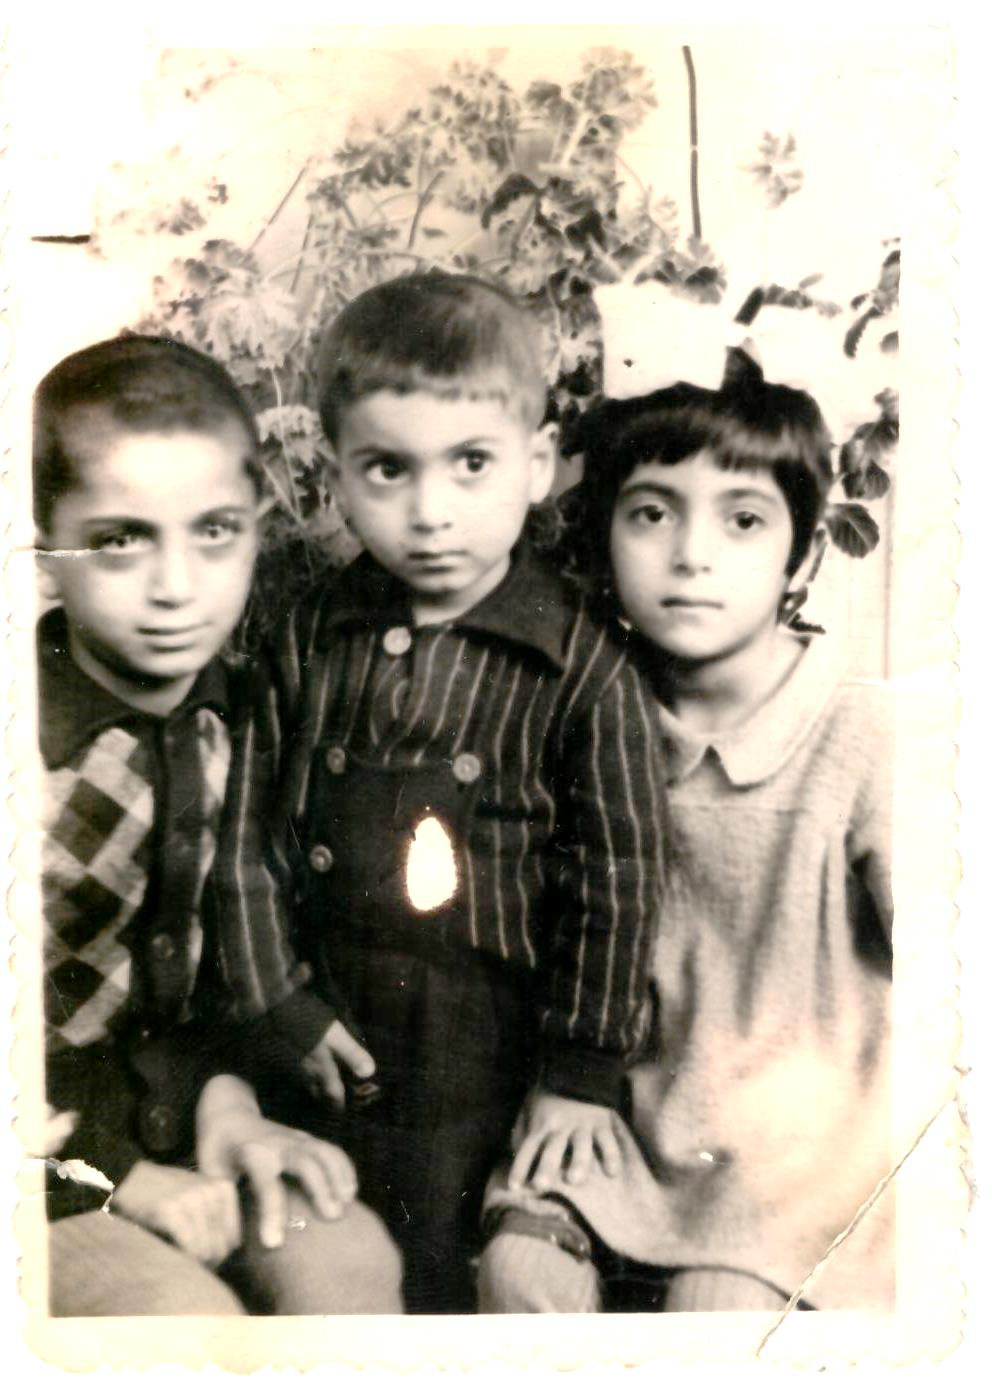 Namesake Aunt Sophia/Sonia with my uncles, Chanukah and Yasha, just before my dad was born